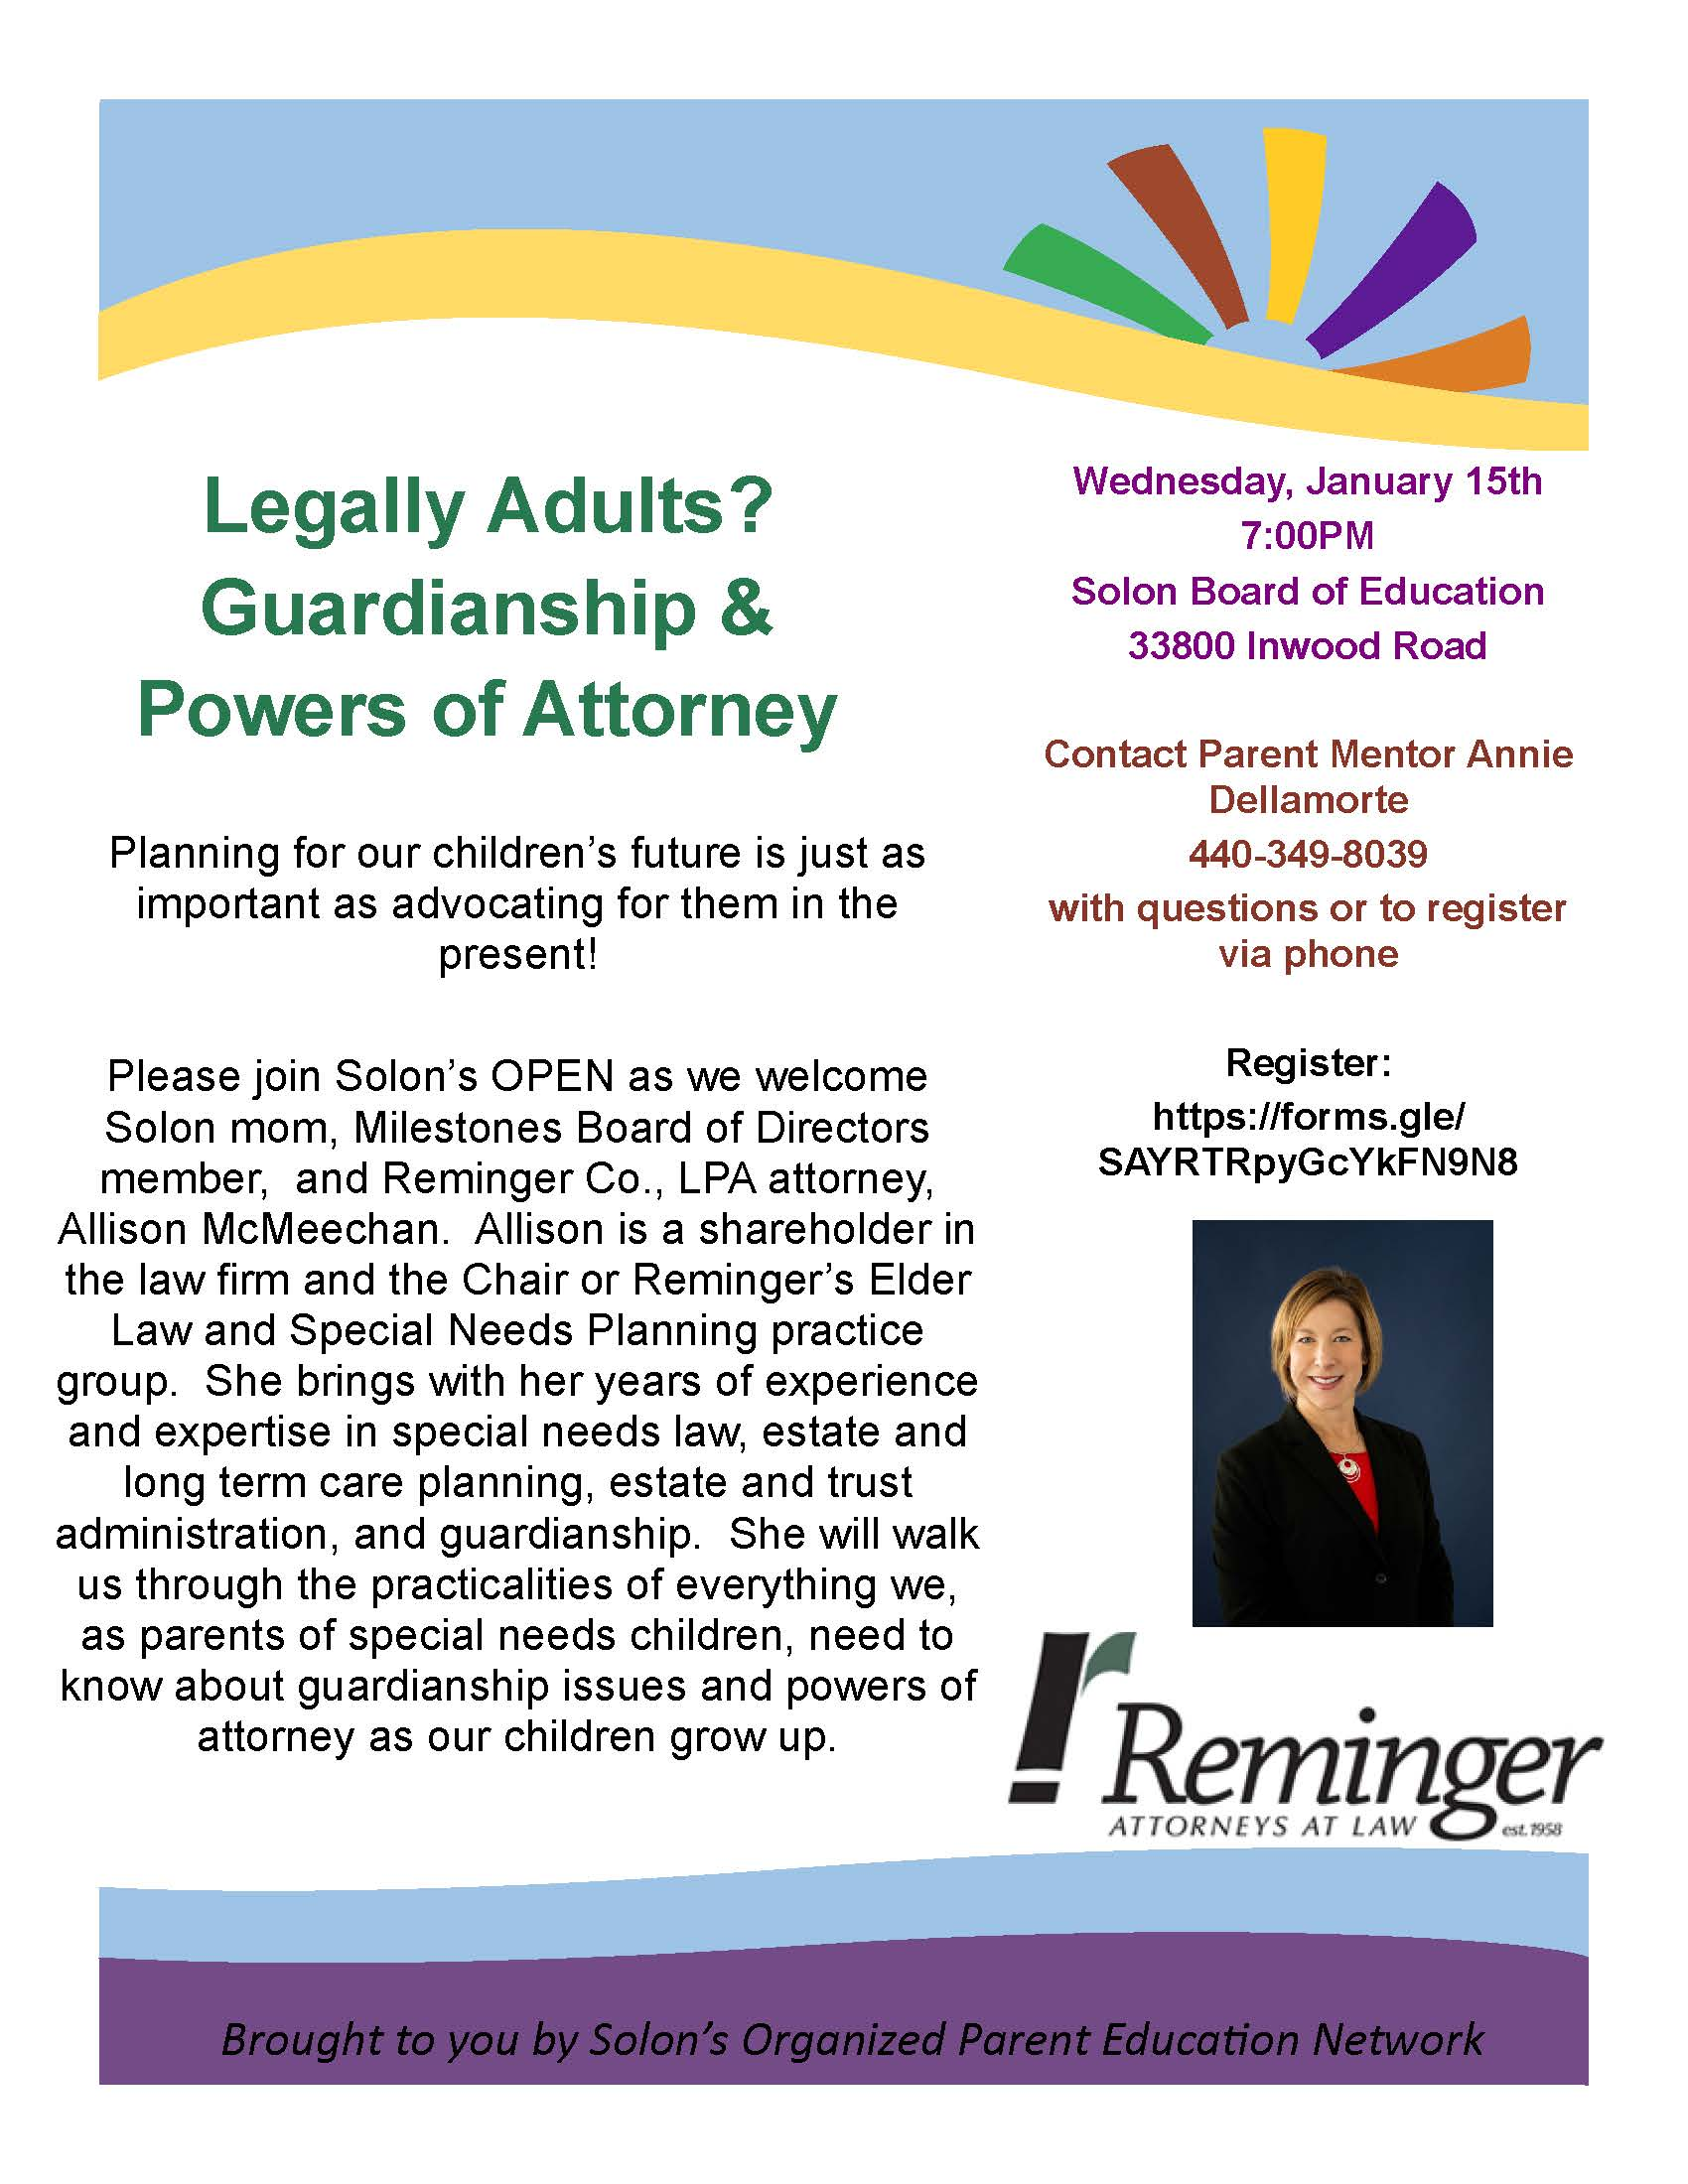 Flier for January 15 OPEN program on guardianship and powers of attorney for families of students with special needs